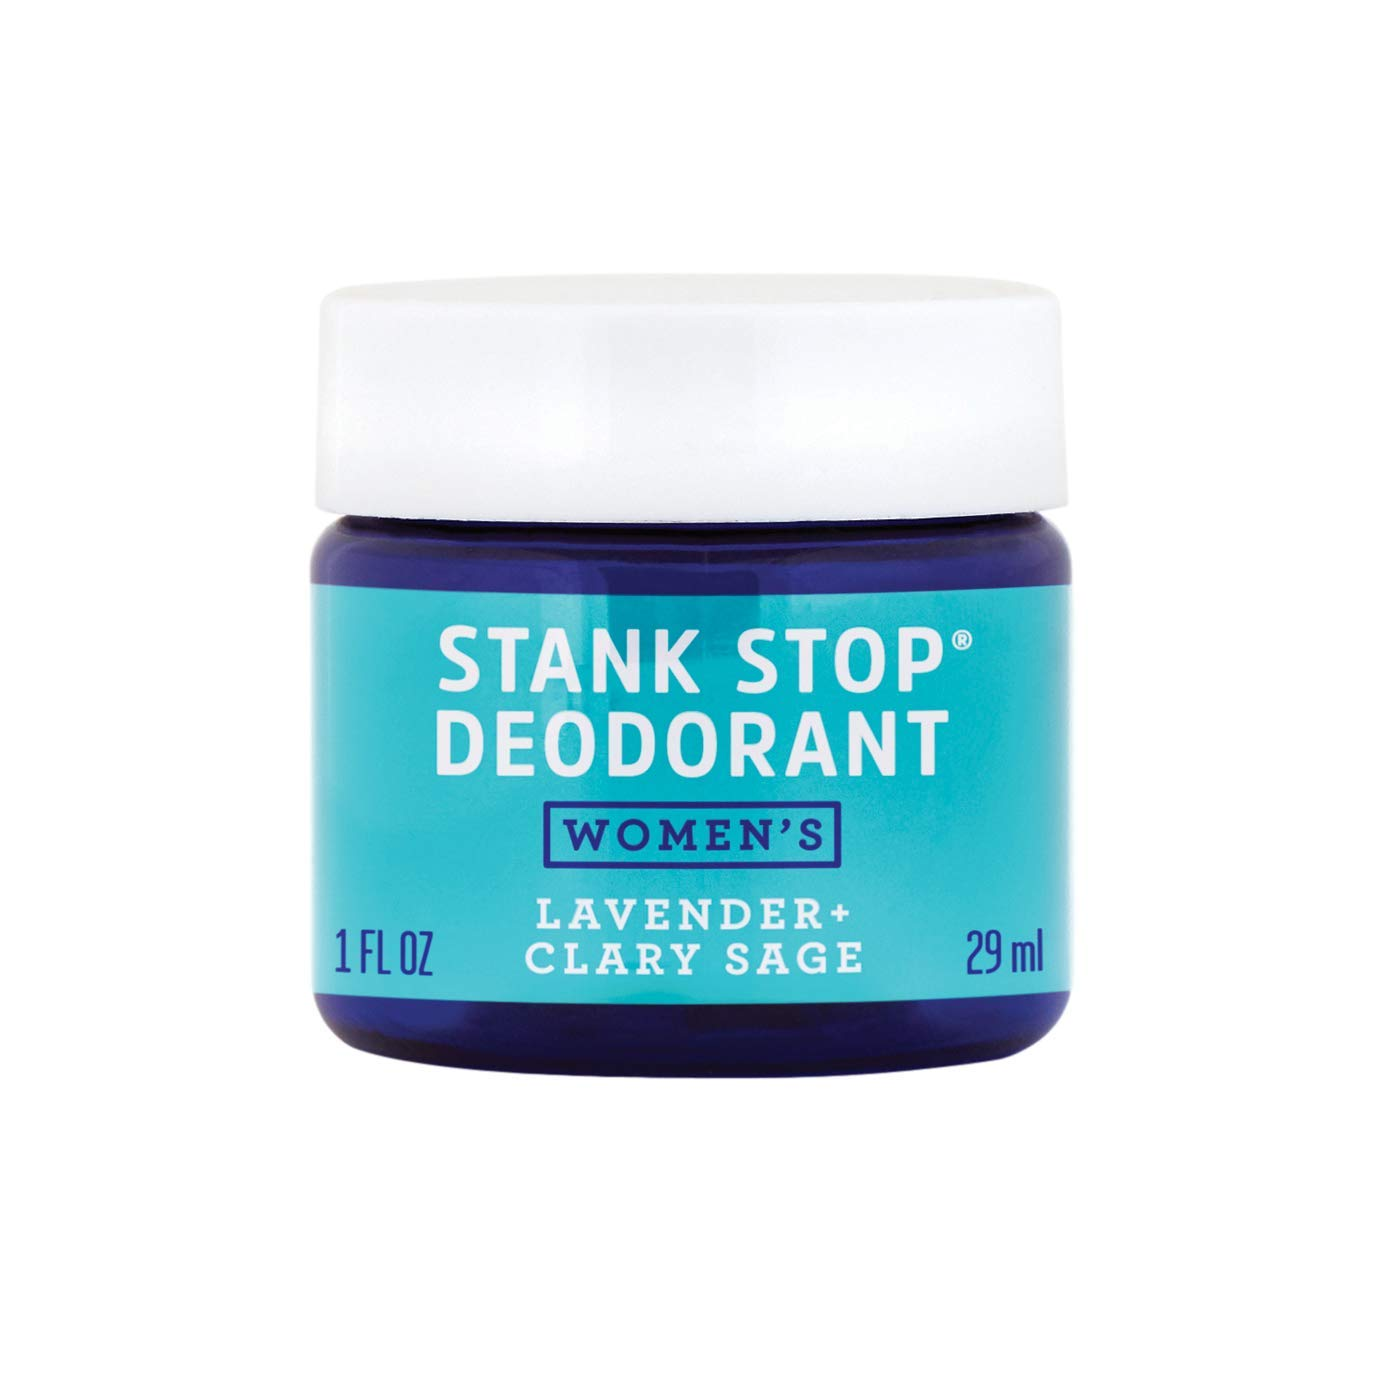 Cheap FATCO Stank Stop All Natural Deodorant Tallo with Cream in a Jar Overseas parallel import regular item